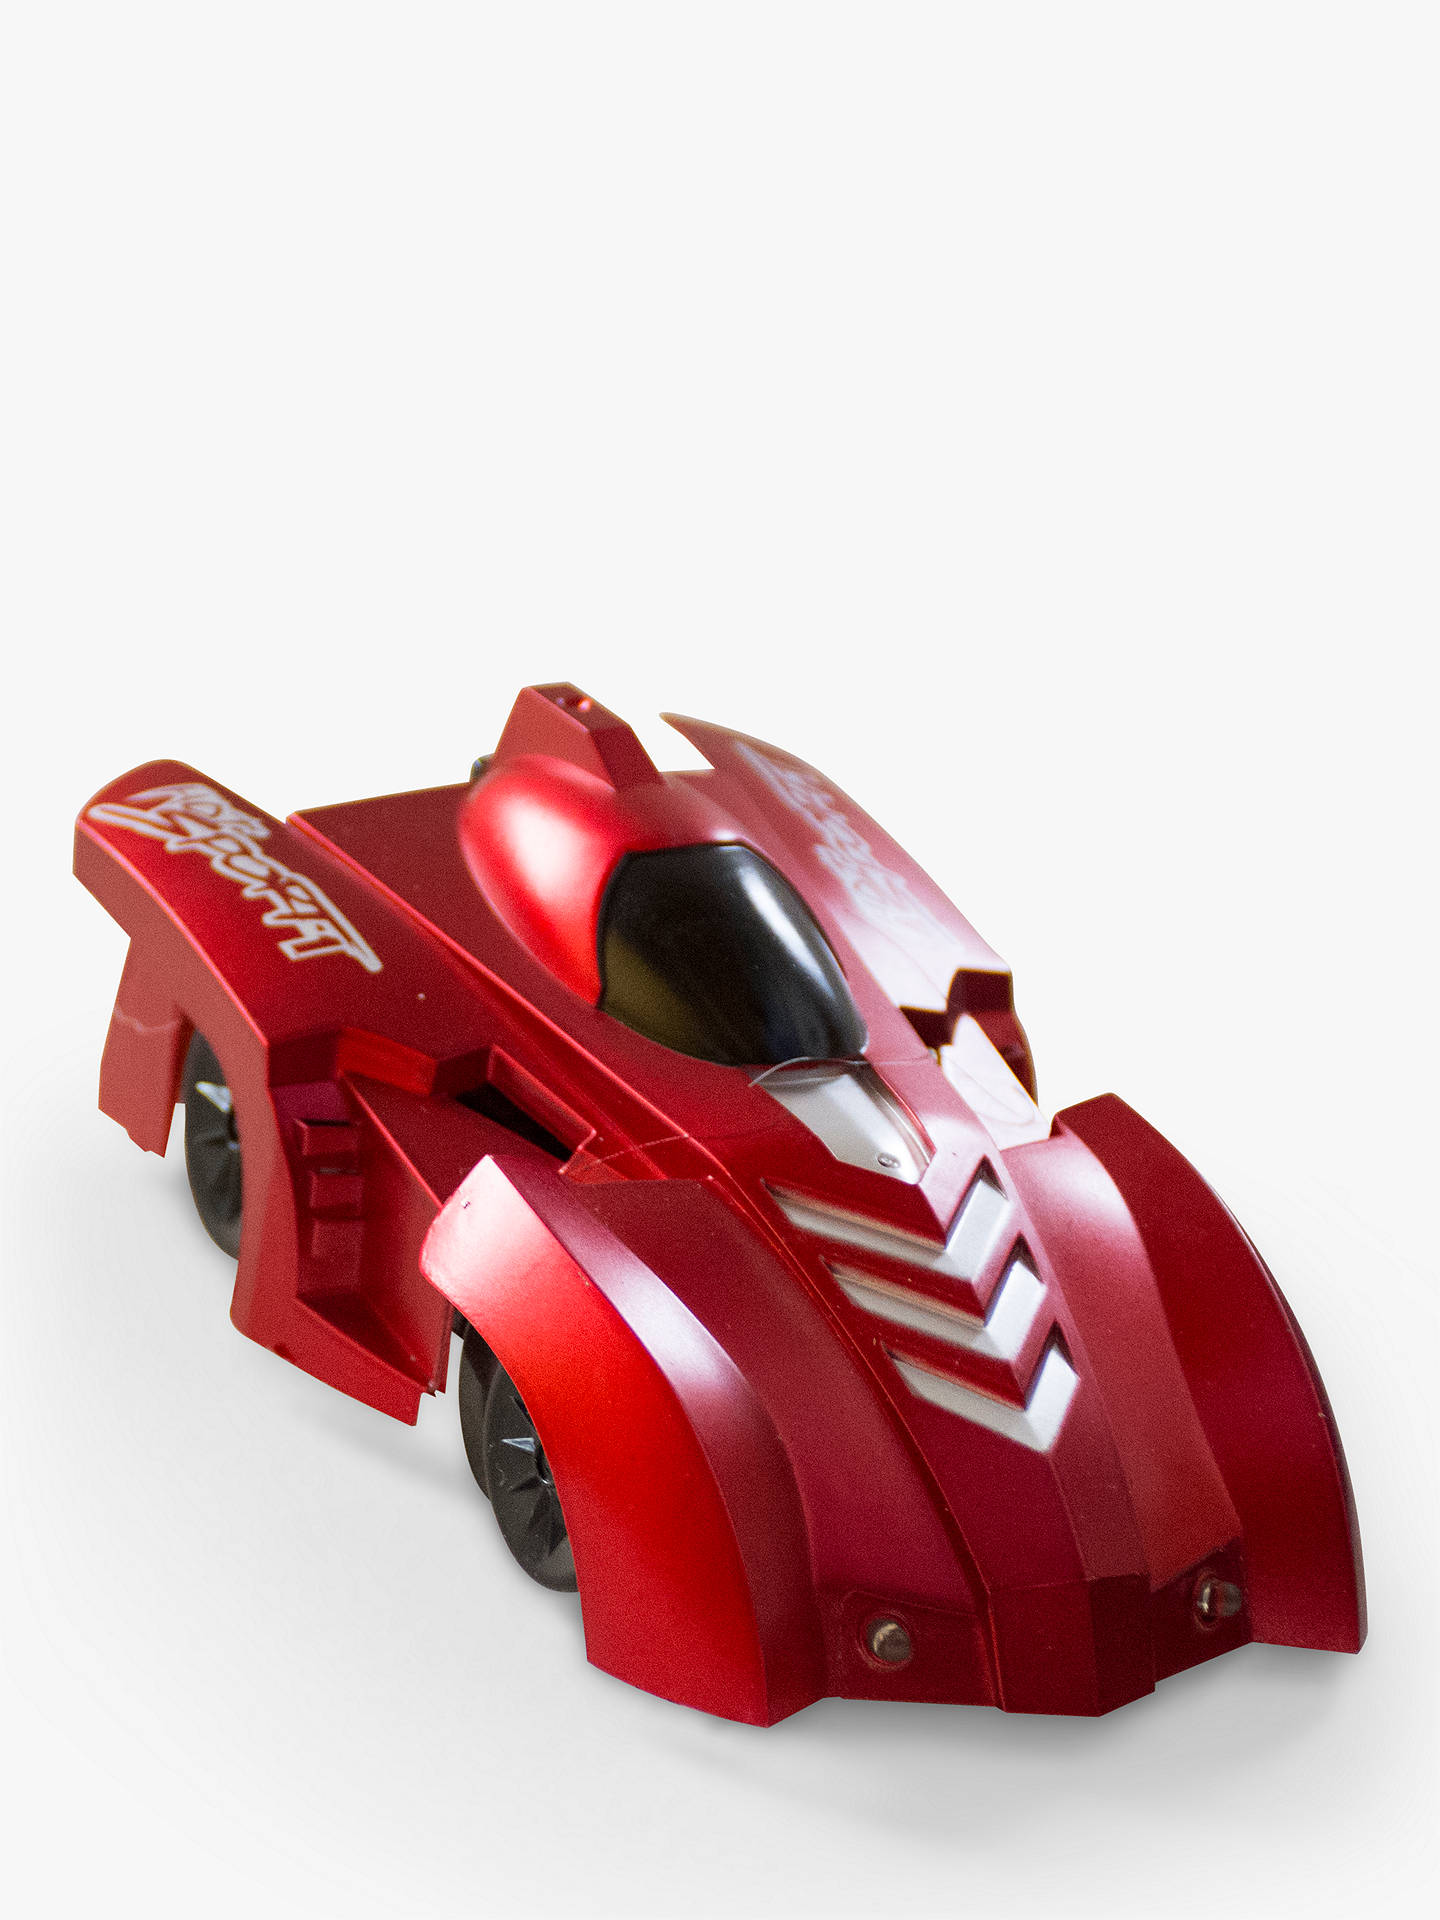 BuyRED5 Remote Control Wall Climbing Car Online at johnlewis.com